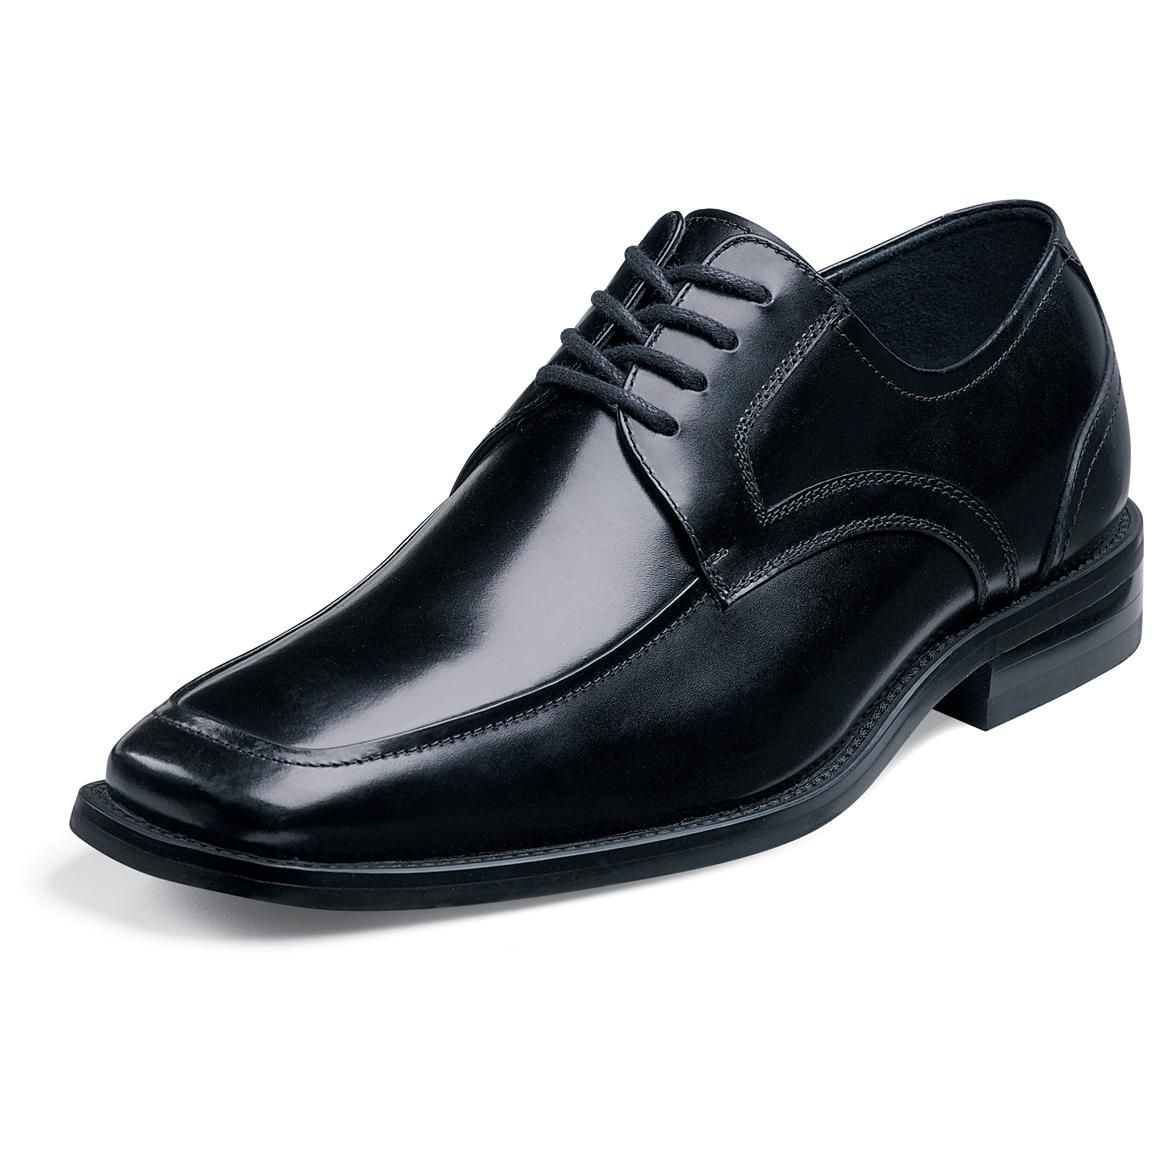 Black Men's Dress Shoes | Men's Shoes | Pinterest | Nice, Dress ...